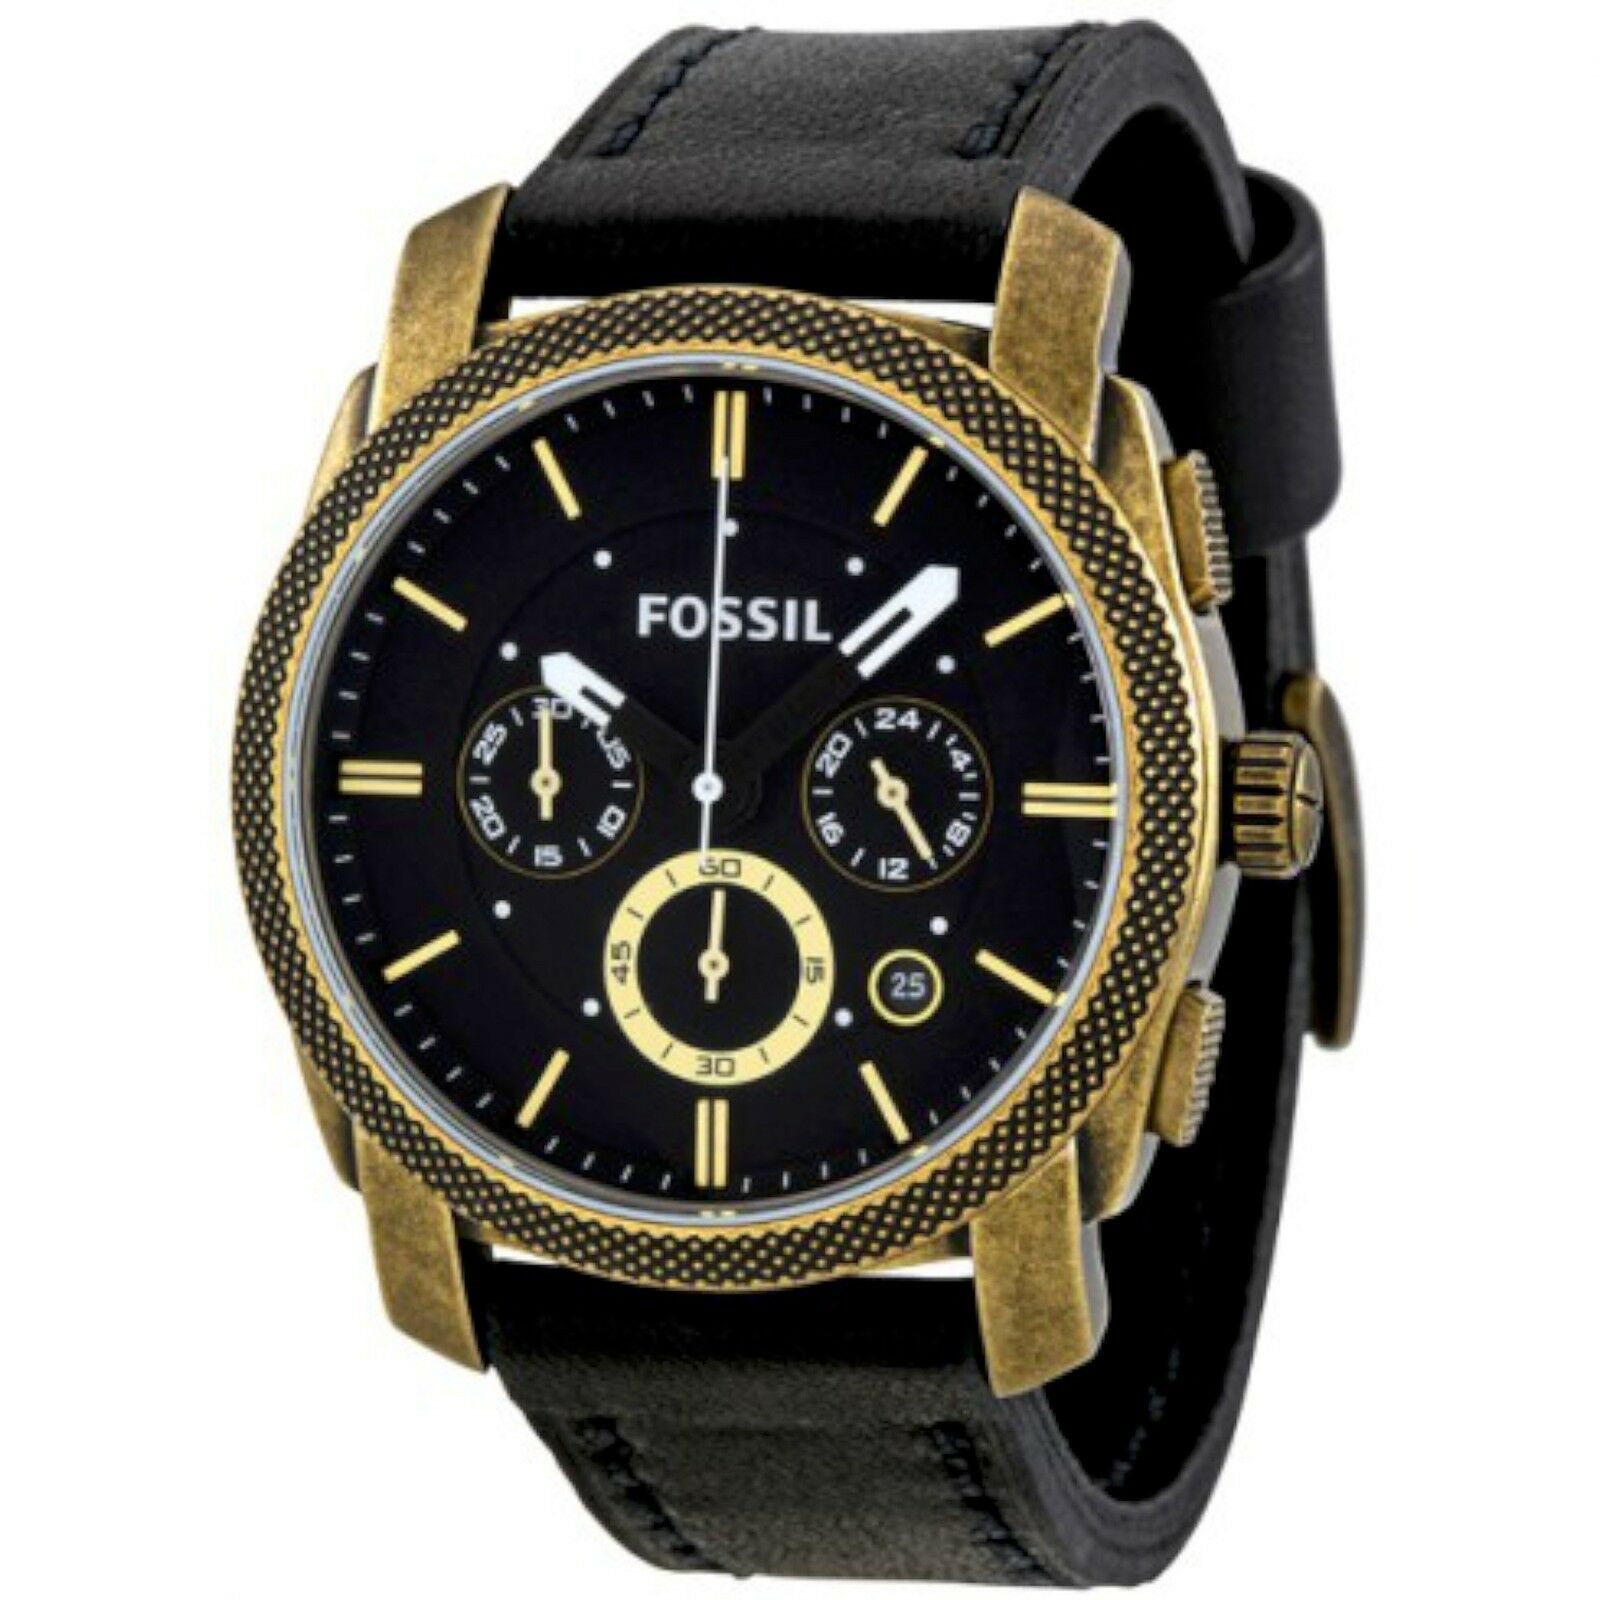 dial buy in low watches s amazon fossil men at watch dp prices india online chronograph grant black machine